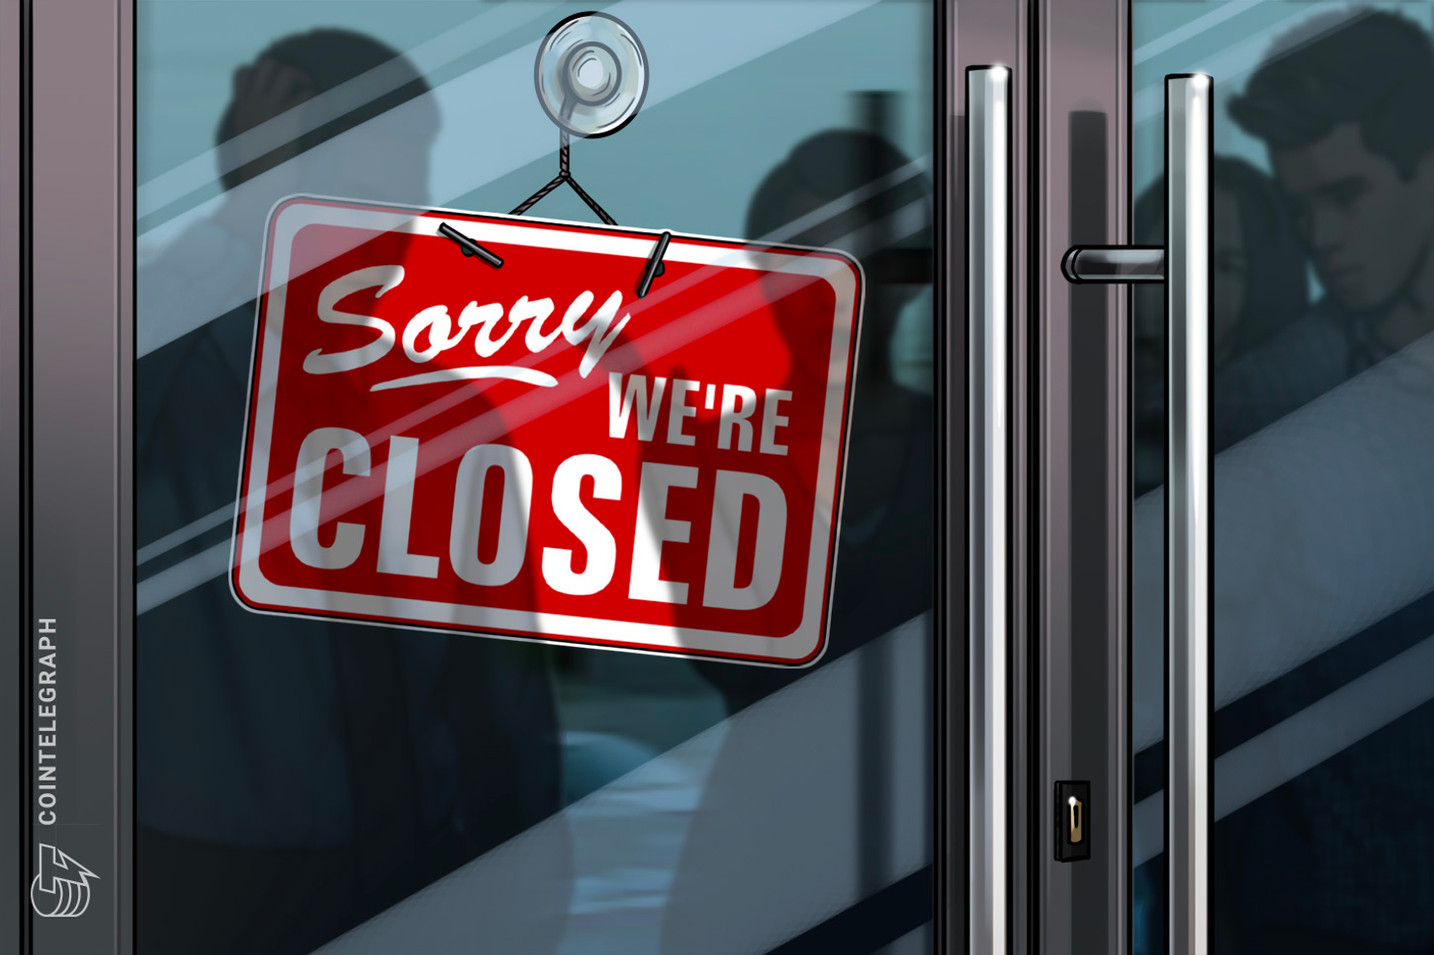 Bitcoin-Based Payment Facilitator Purse.io Shuts Down